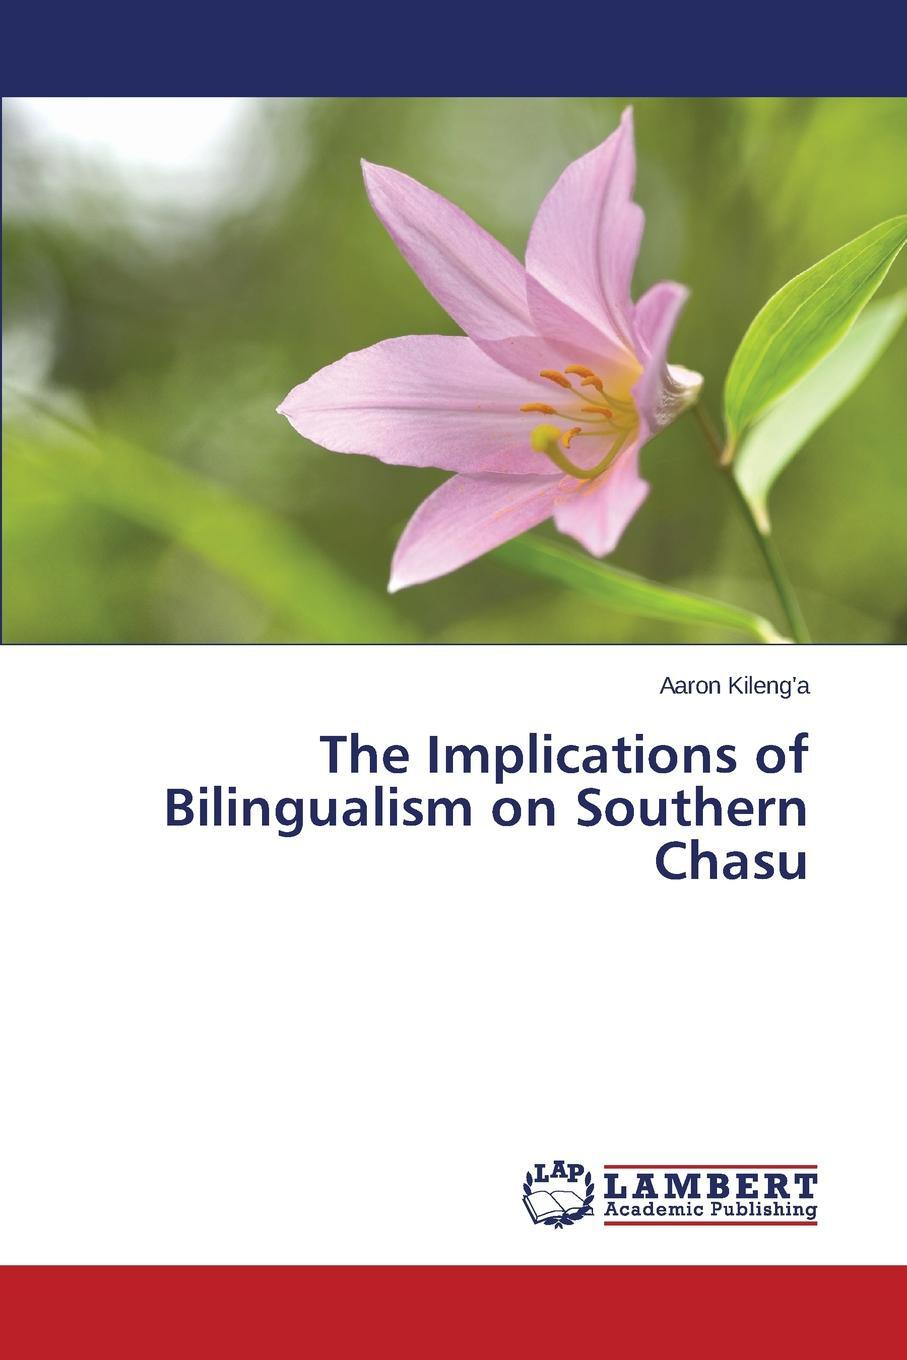 The Implications of Bilingualism on Southern Chasu